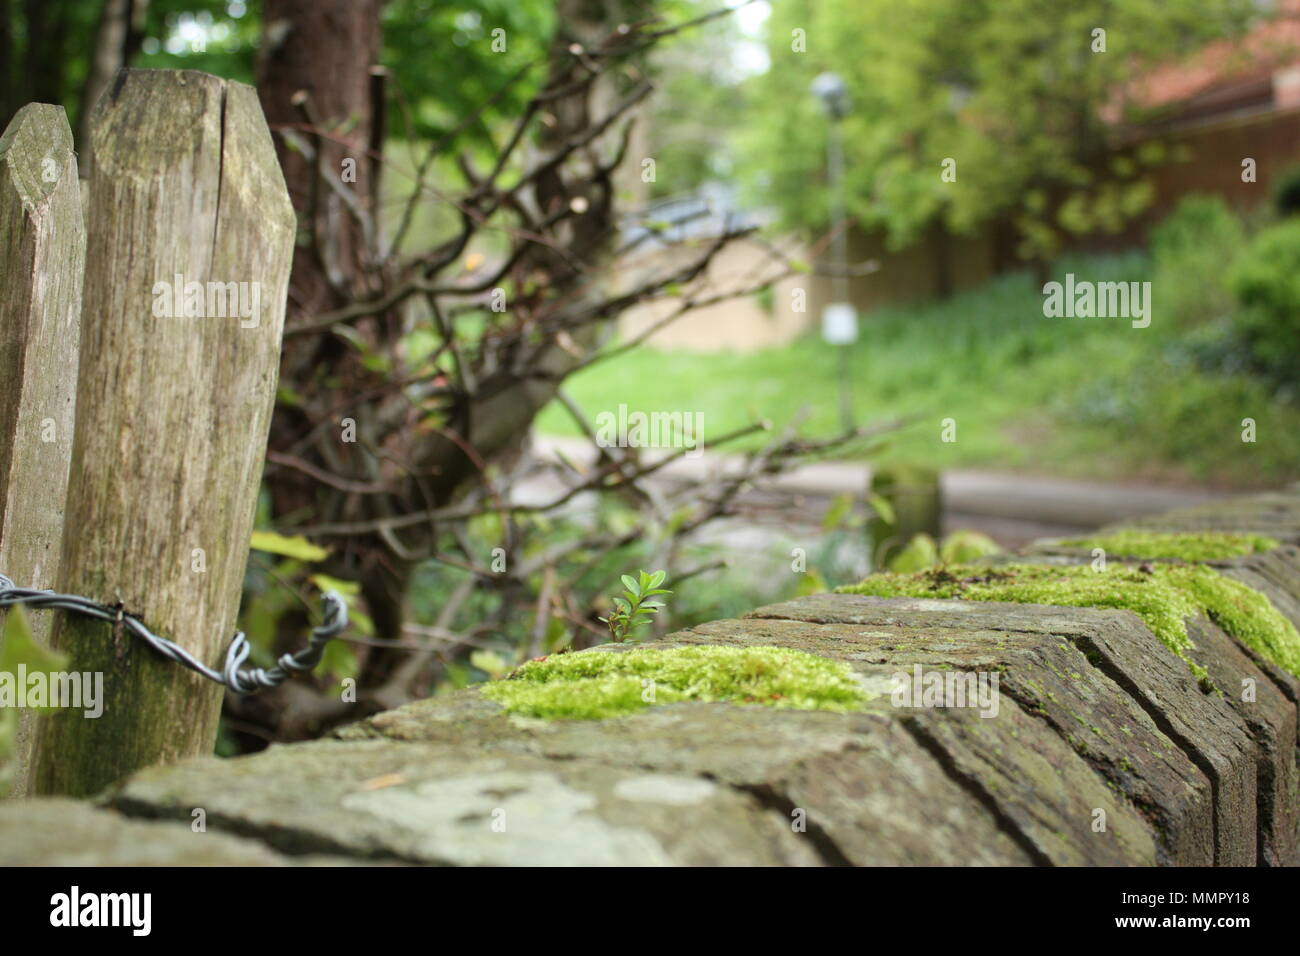 A moss-covered fence diverges from a low moss-covered wall in the early spring as plants all around begin to sprout in the warm weather. - Stock Image